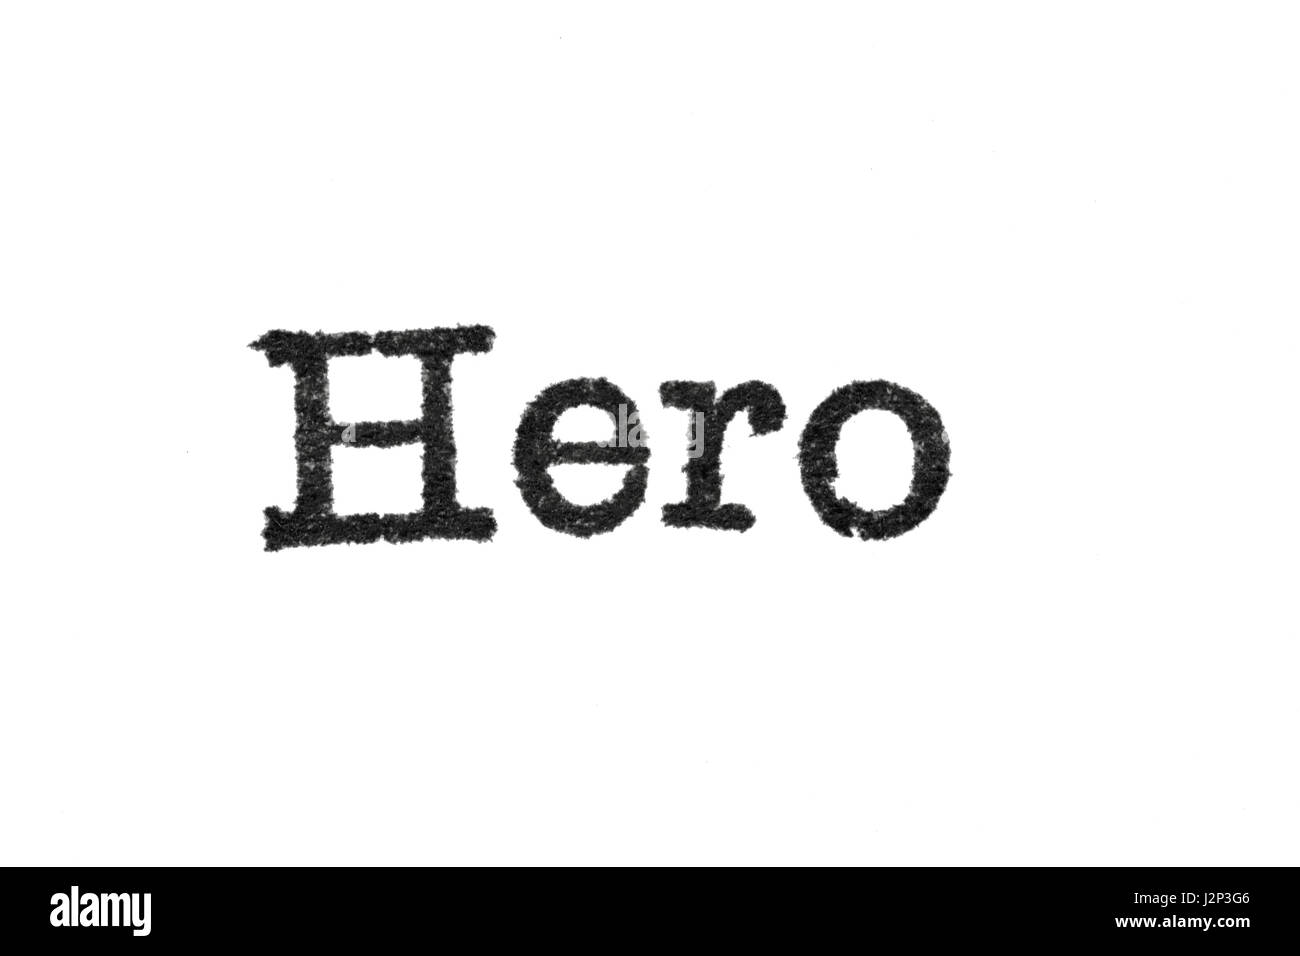 The word 'Hero' from a typewriter on a white background - Stock Image